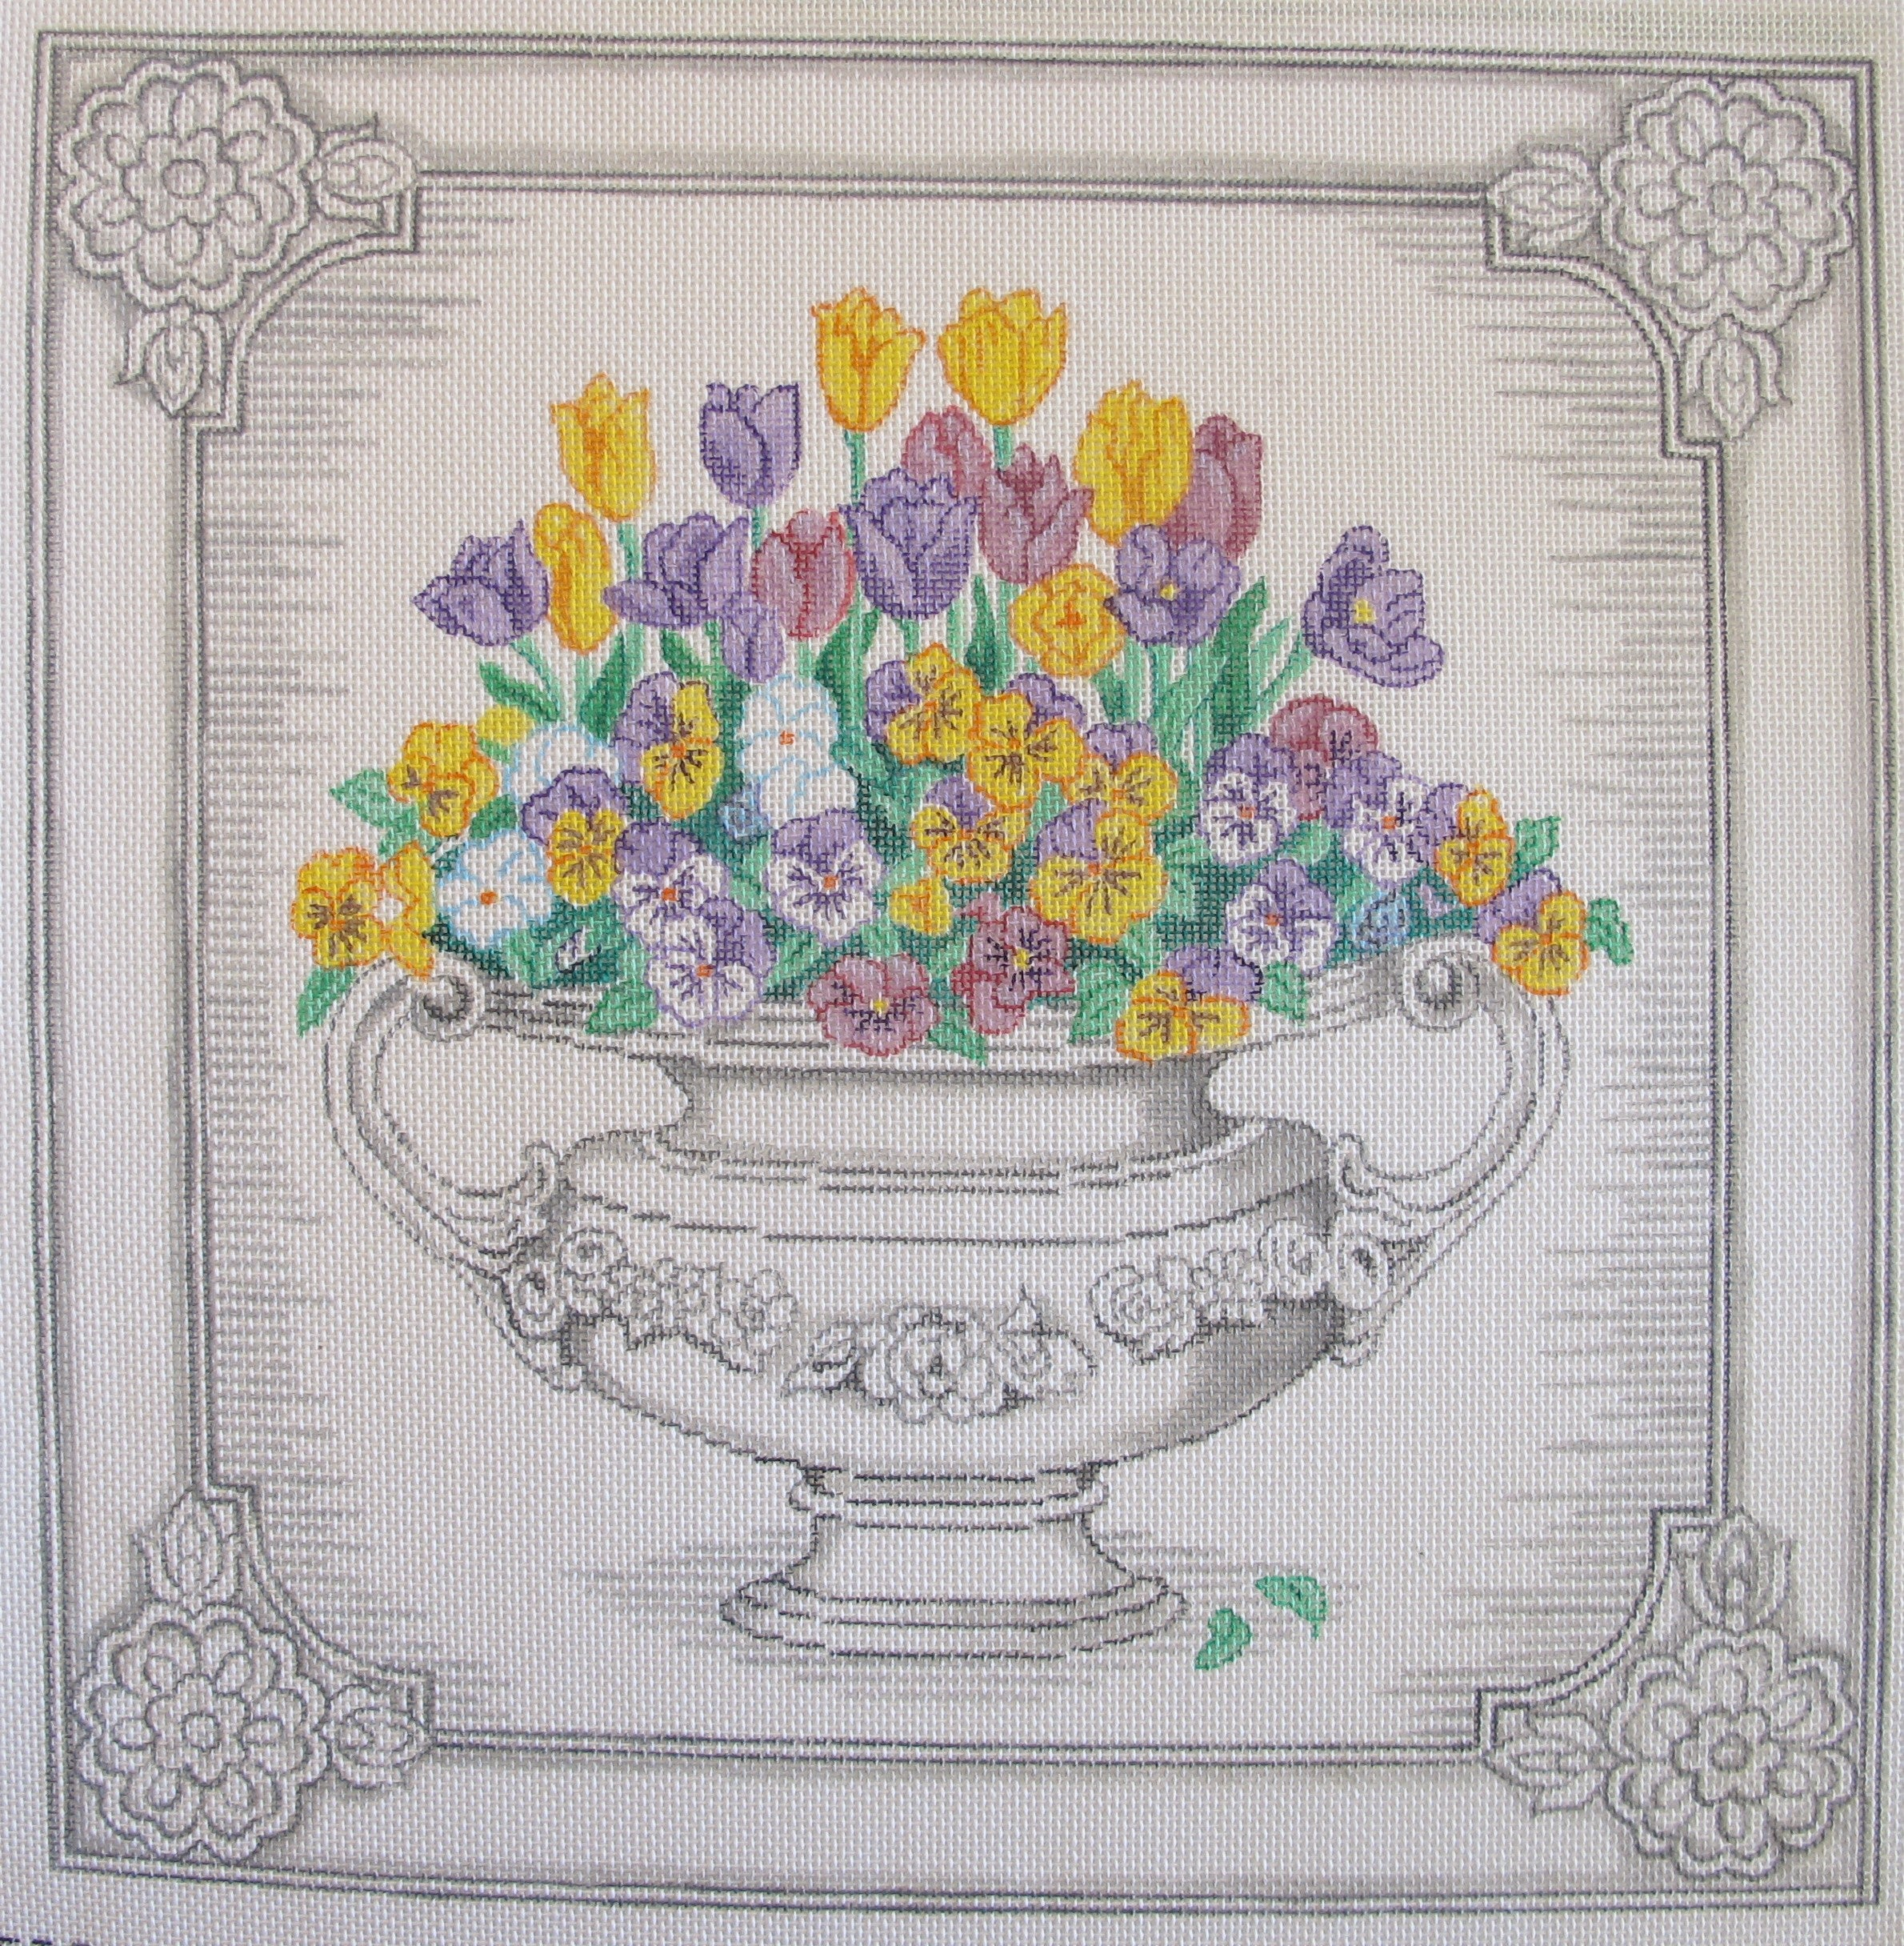 Pansies in Urn